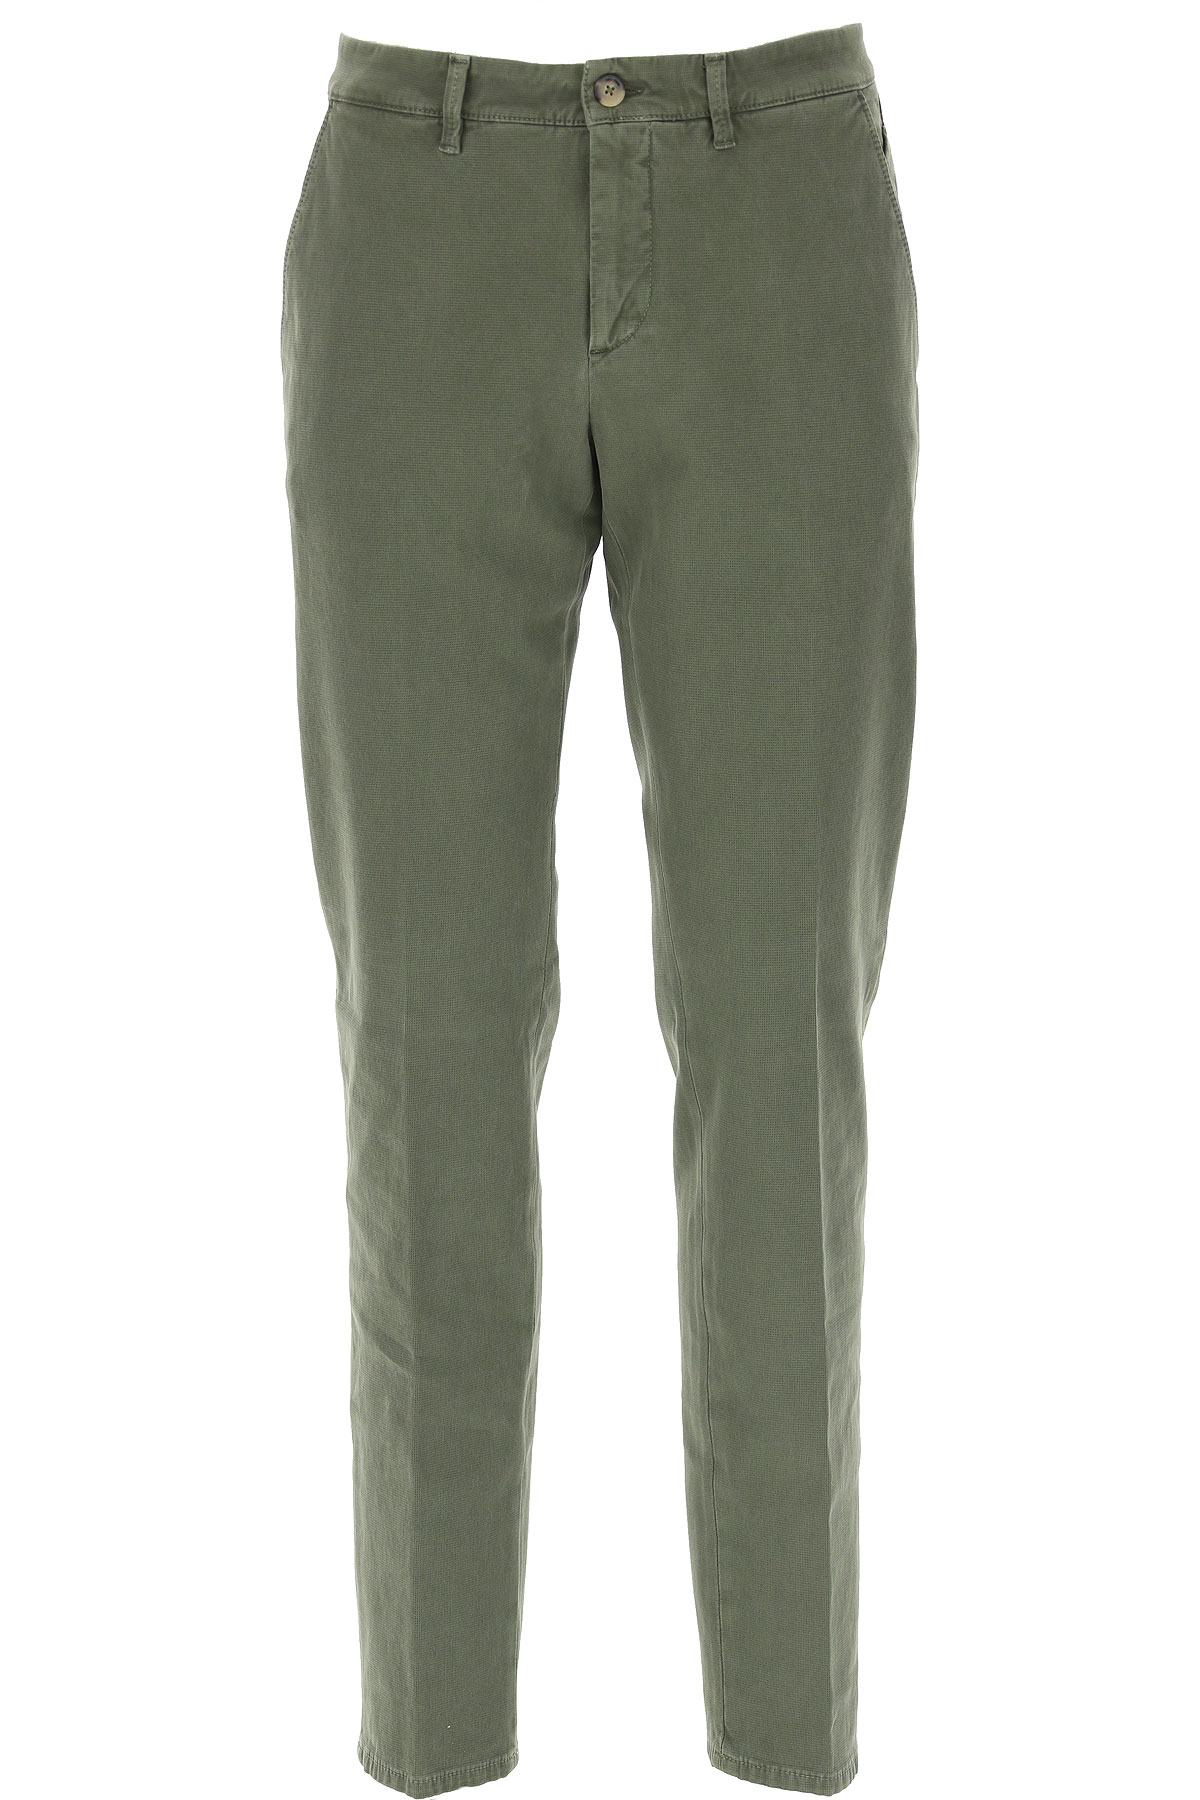 Jeckerson Pants for Men On Sale, Olive Green, Cotton, 2019, 30 31 32 33 34 35 36 38